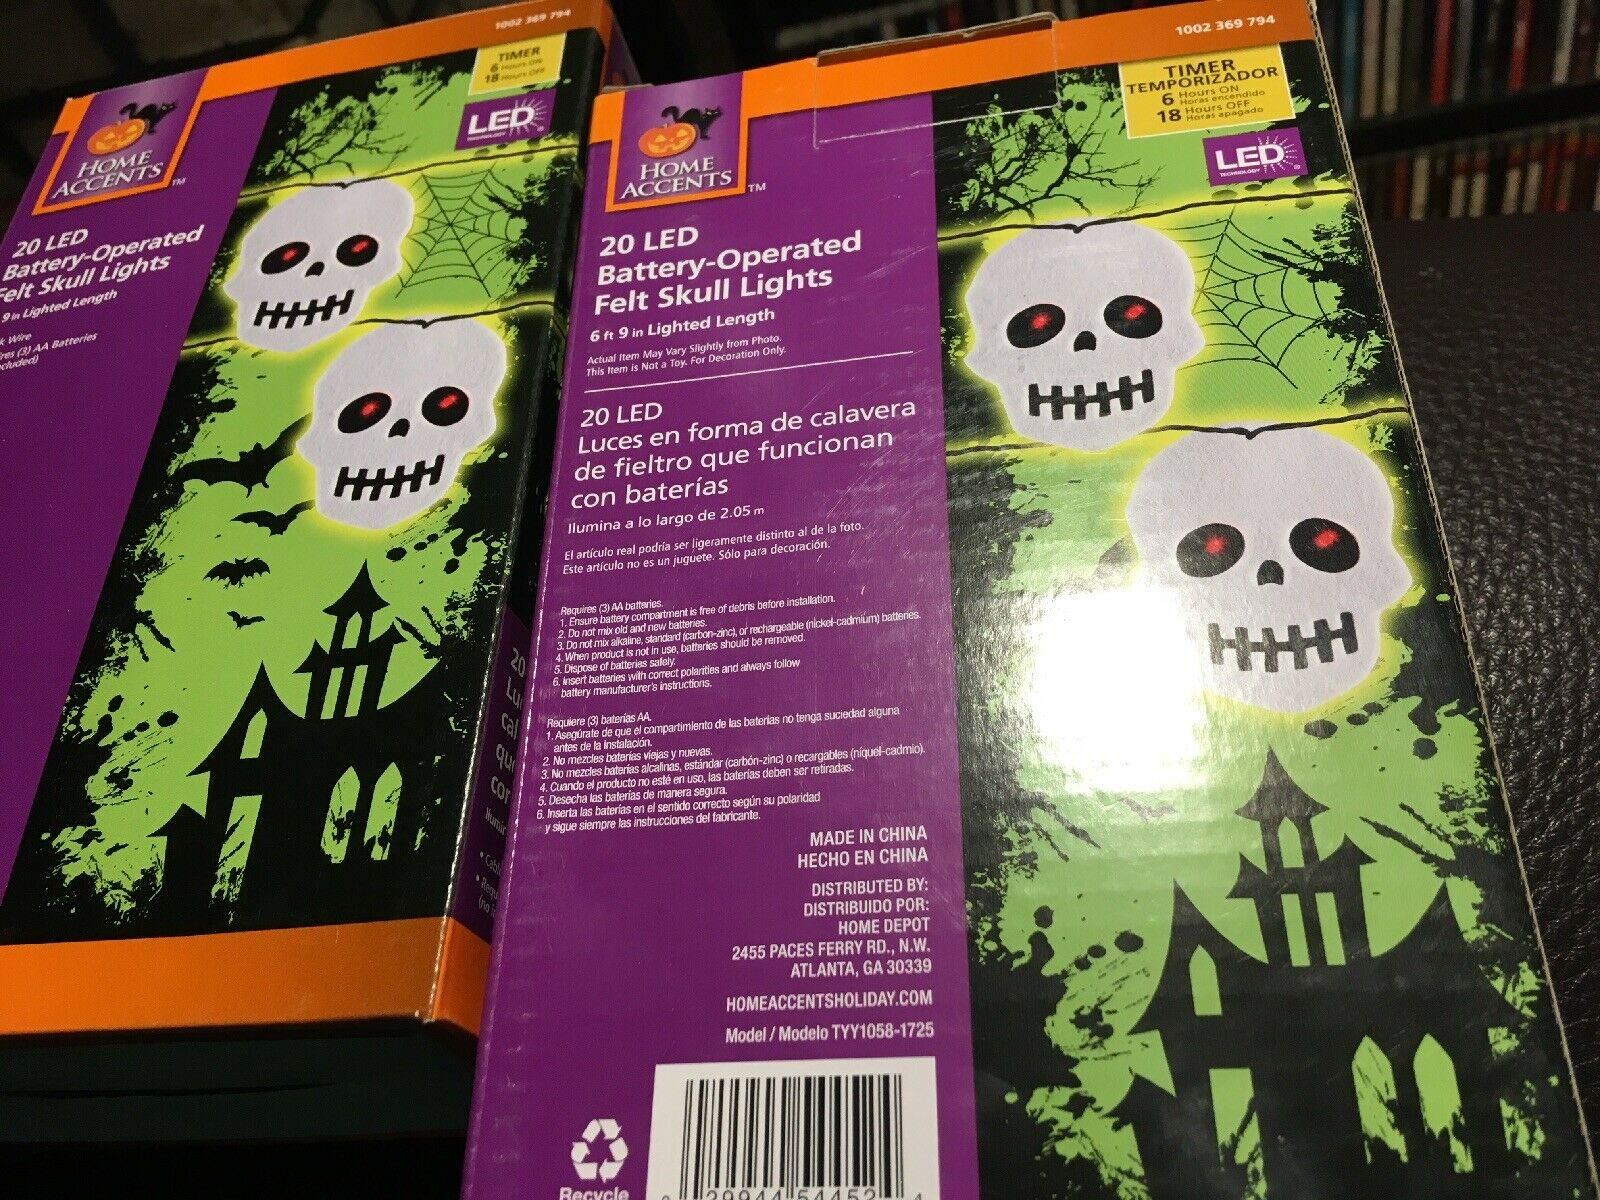 Home Accents Halloween 9 ft Lighted Length with 36-Light LED white skulls